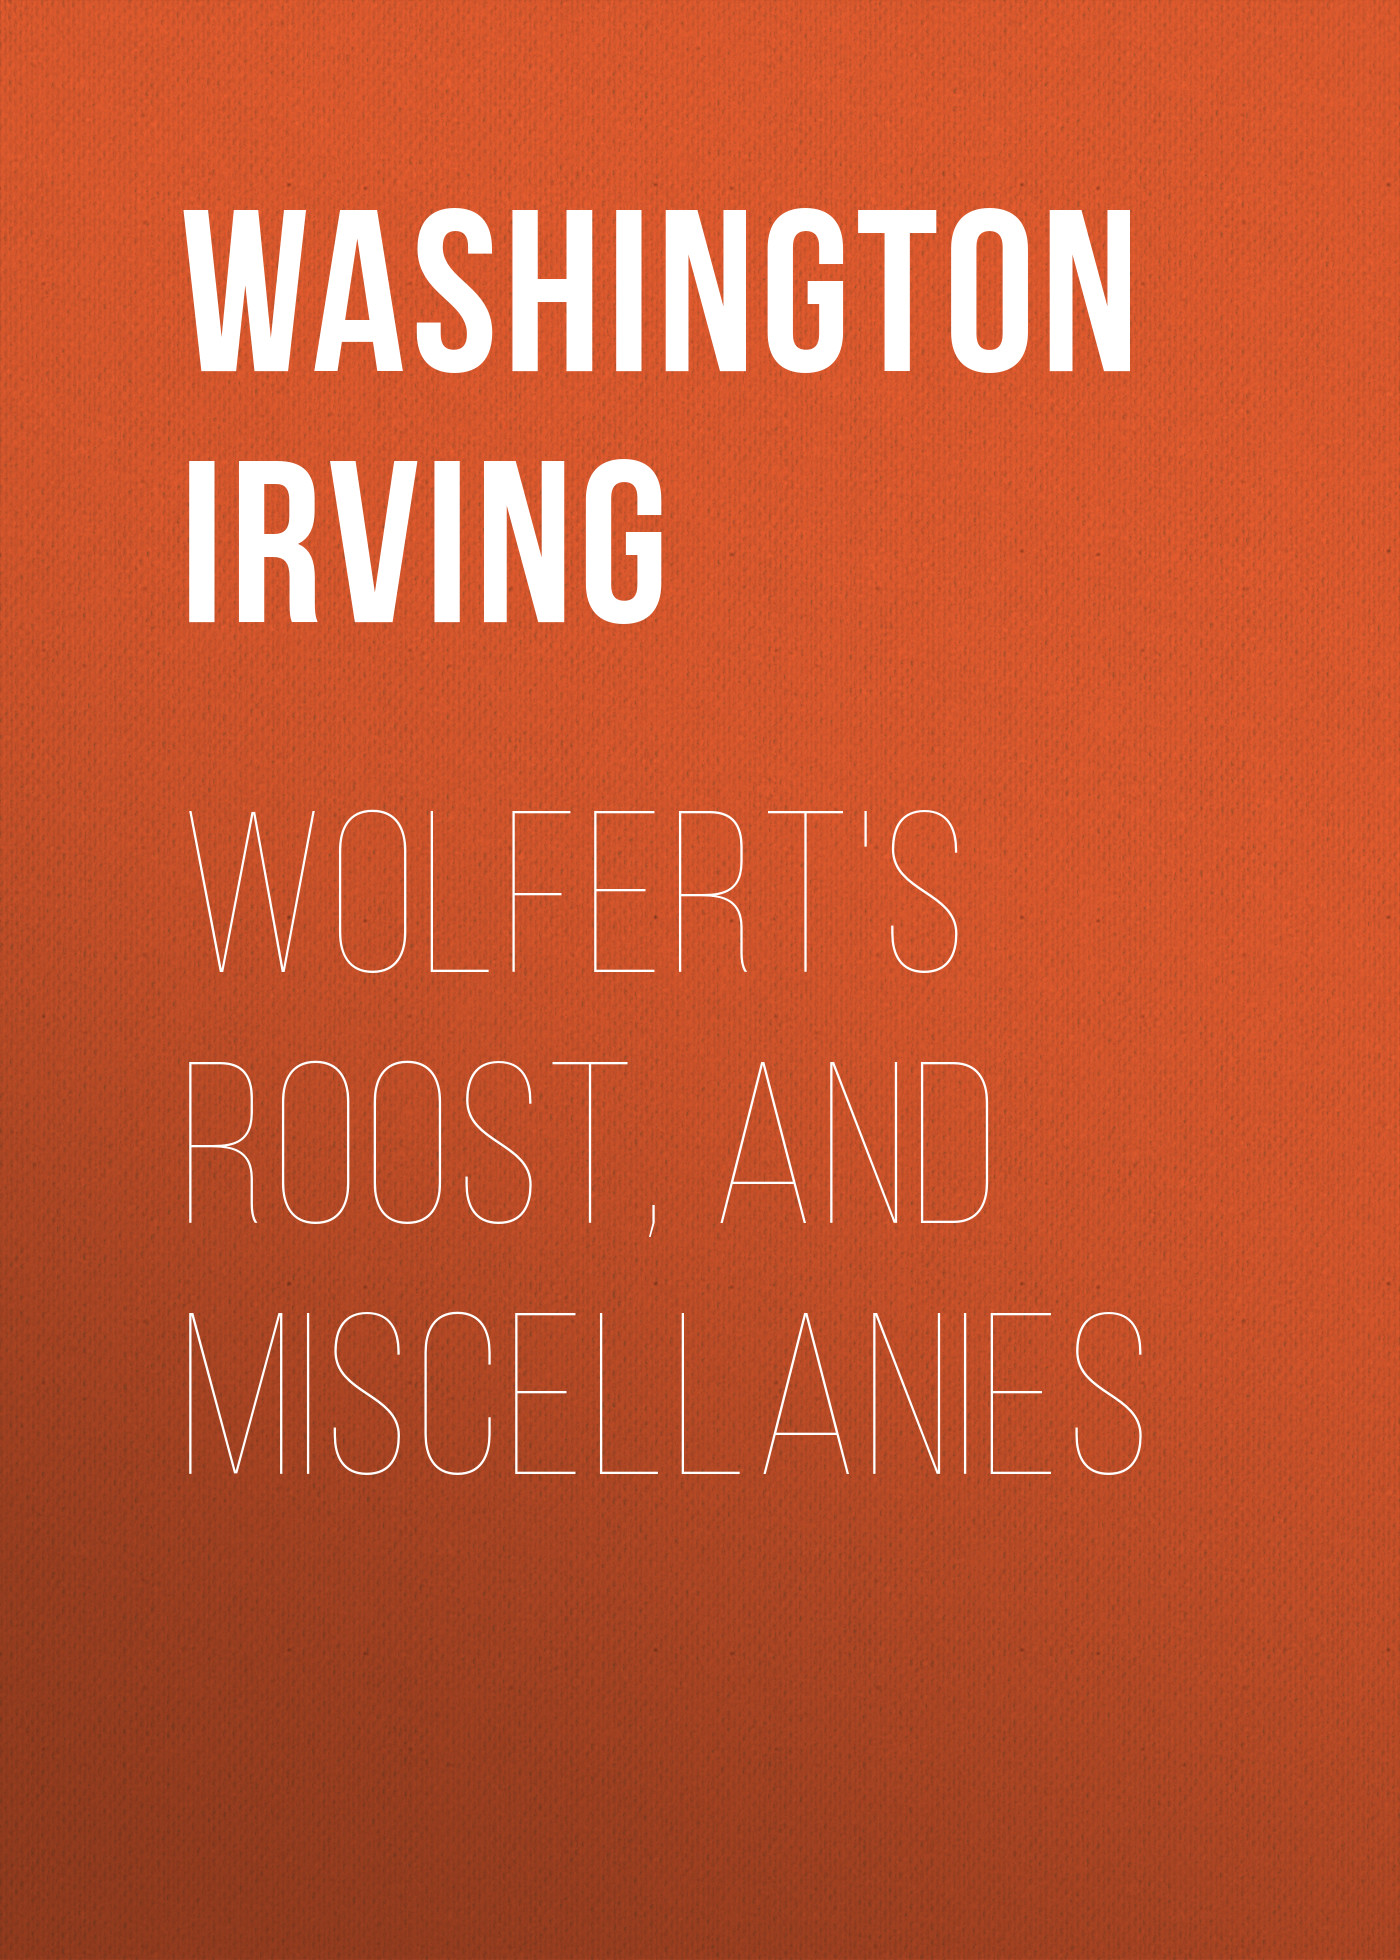 Вашингтон Ирвинг Wolfert's Roost, and Miscellanies washington irving wolfert s roost and miscellanies